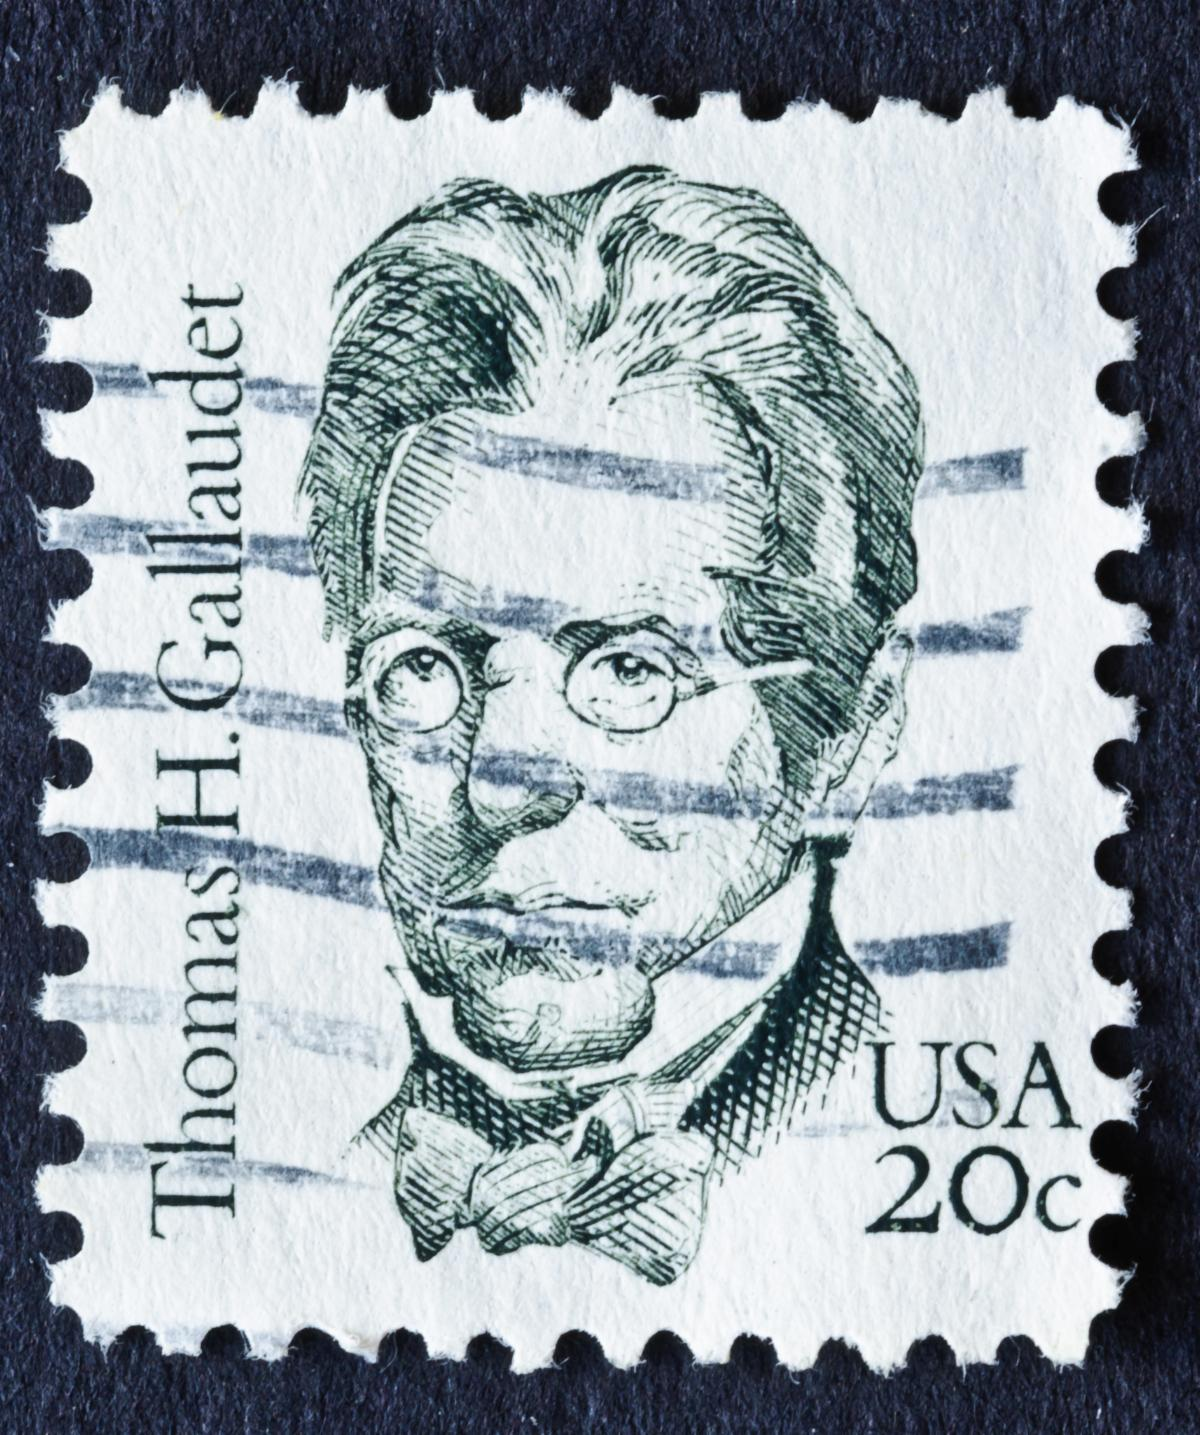 Stamp Image of Thomas Gallaudet. USA 20c